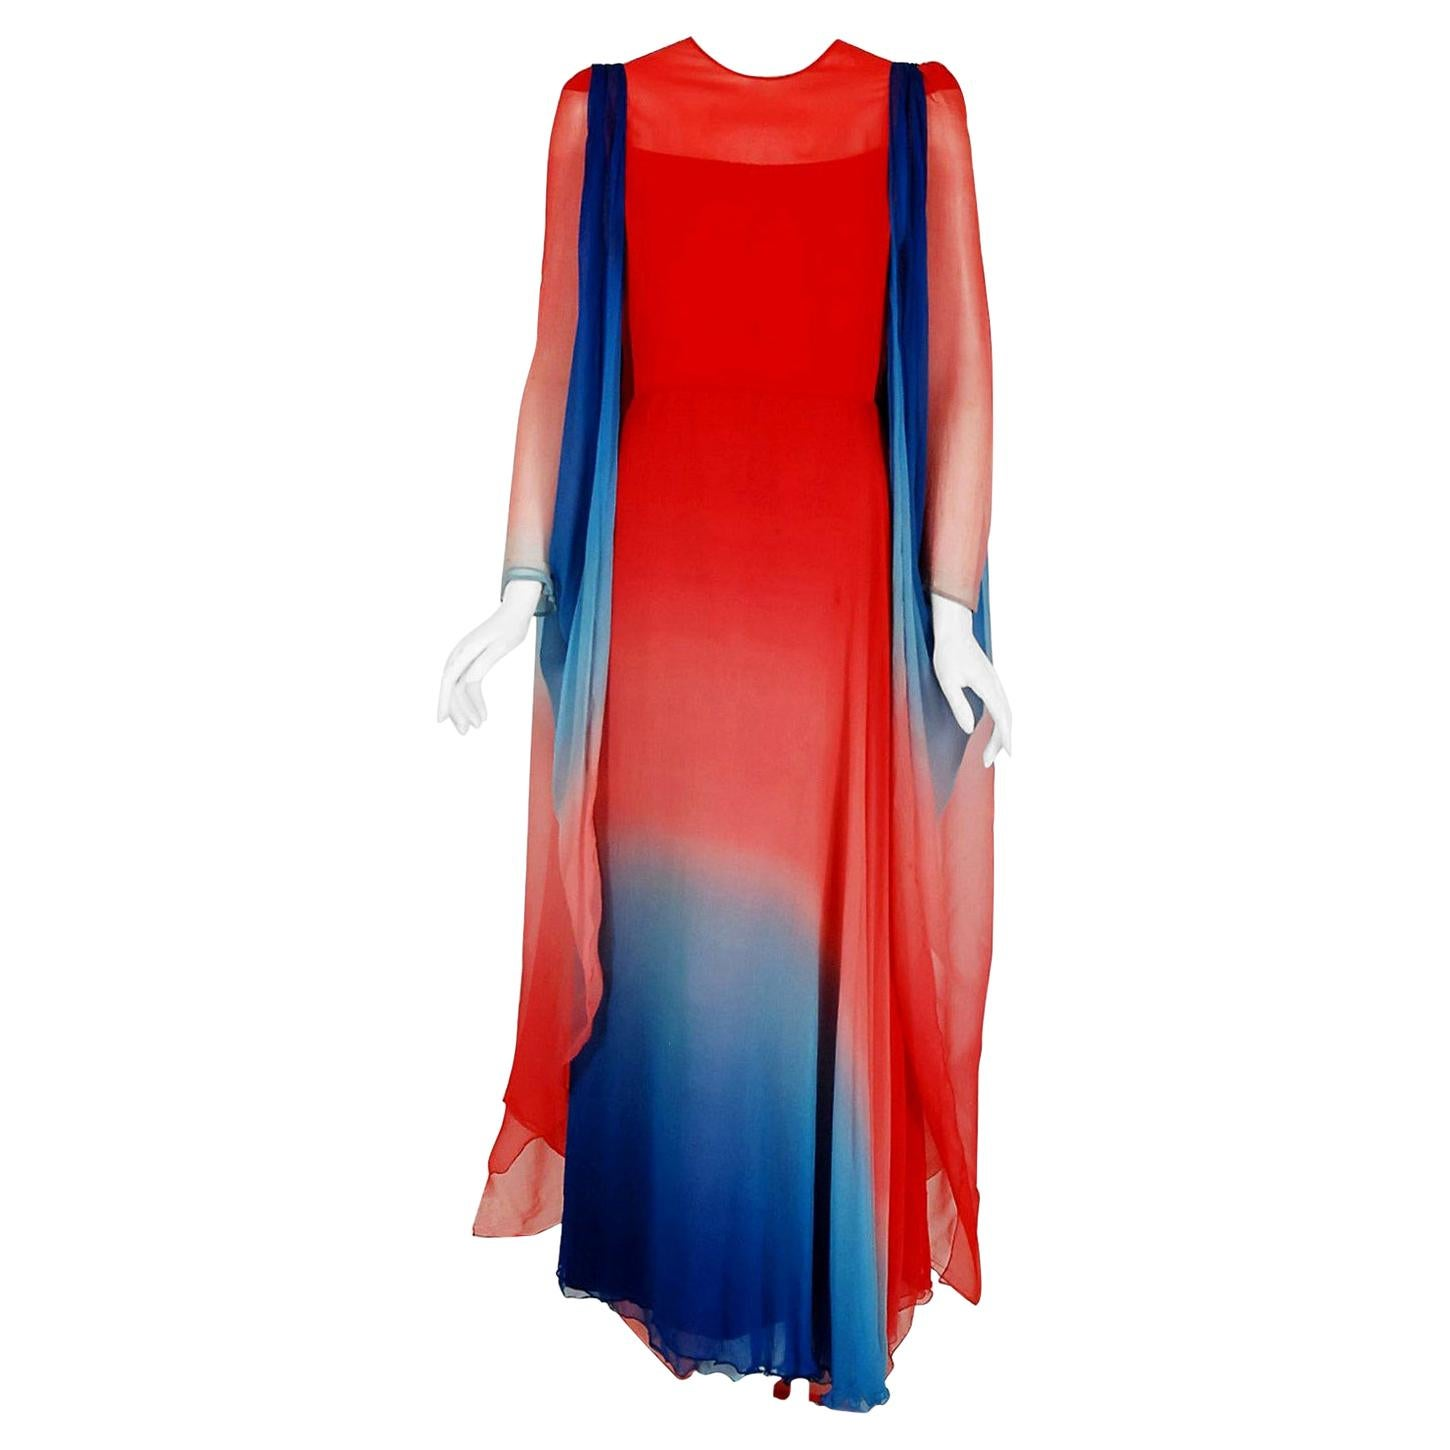 Vintage 1977 Arnold Scaasi Couture Ombre Silk Chiffon Illusion Gown & Vest Cape